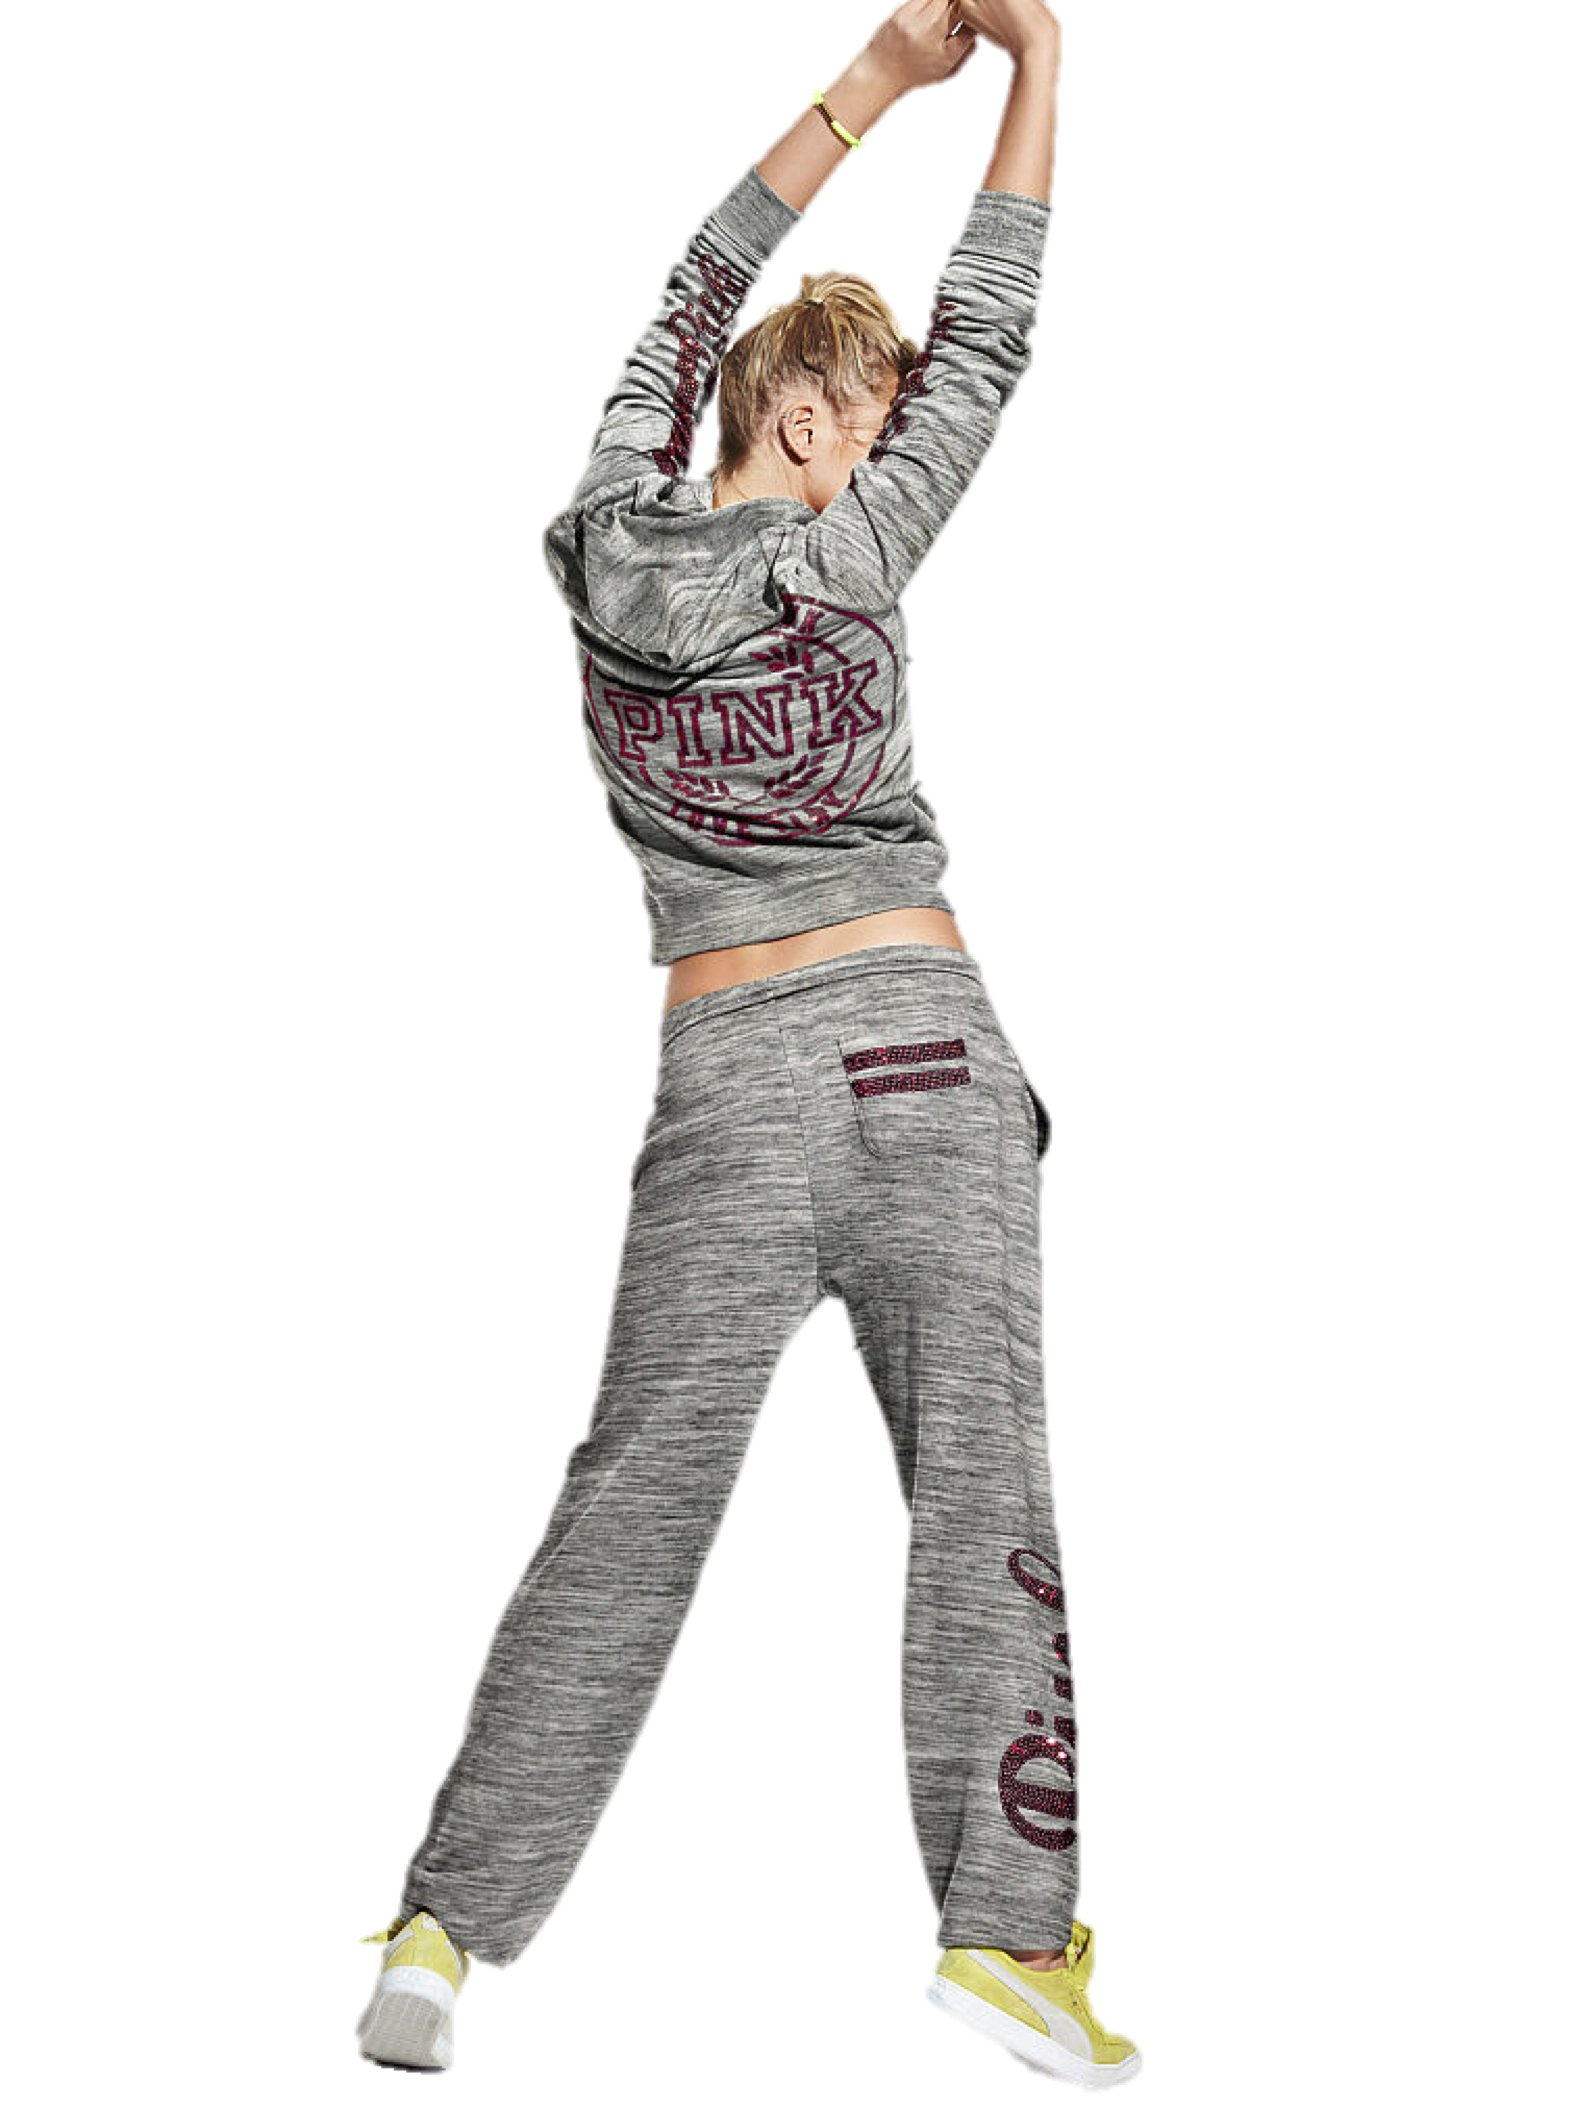 Victoria's Secret PINK Bling Hoodie Campus Sweat Pants Set X-Small Gray Marl